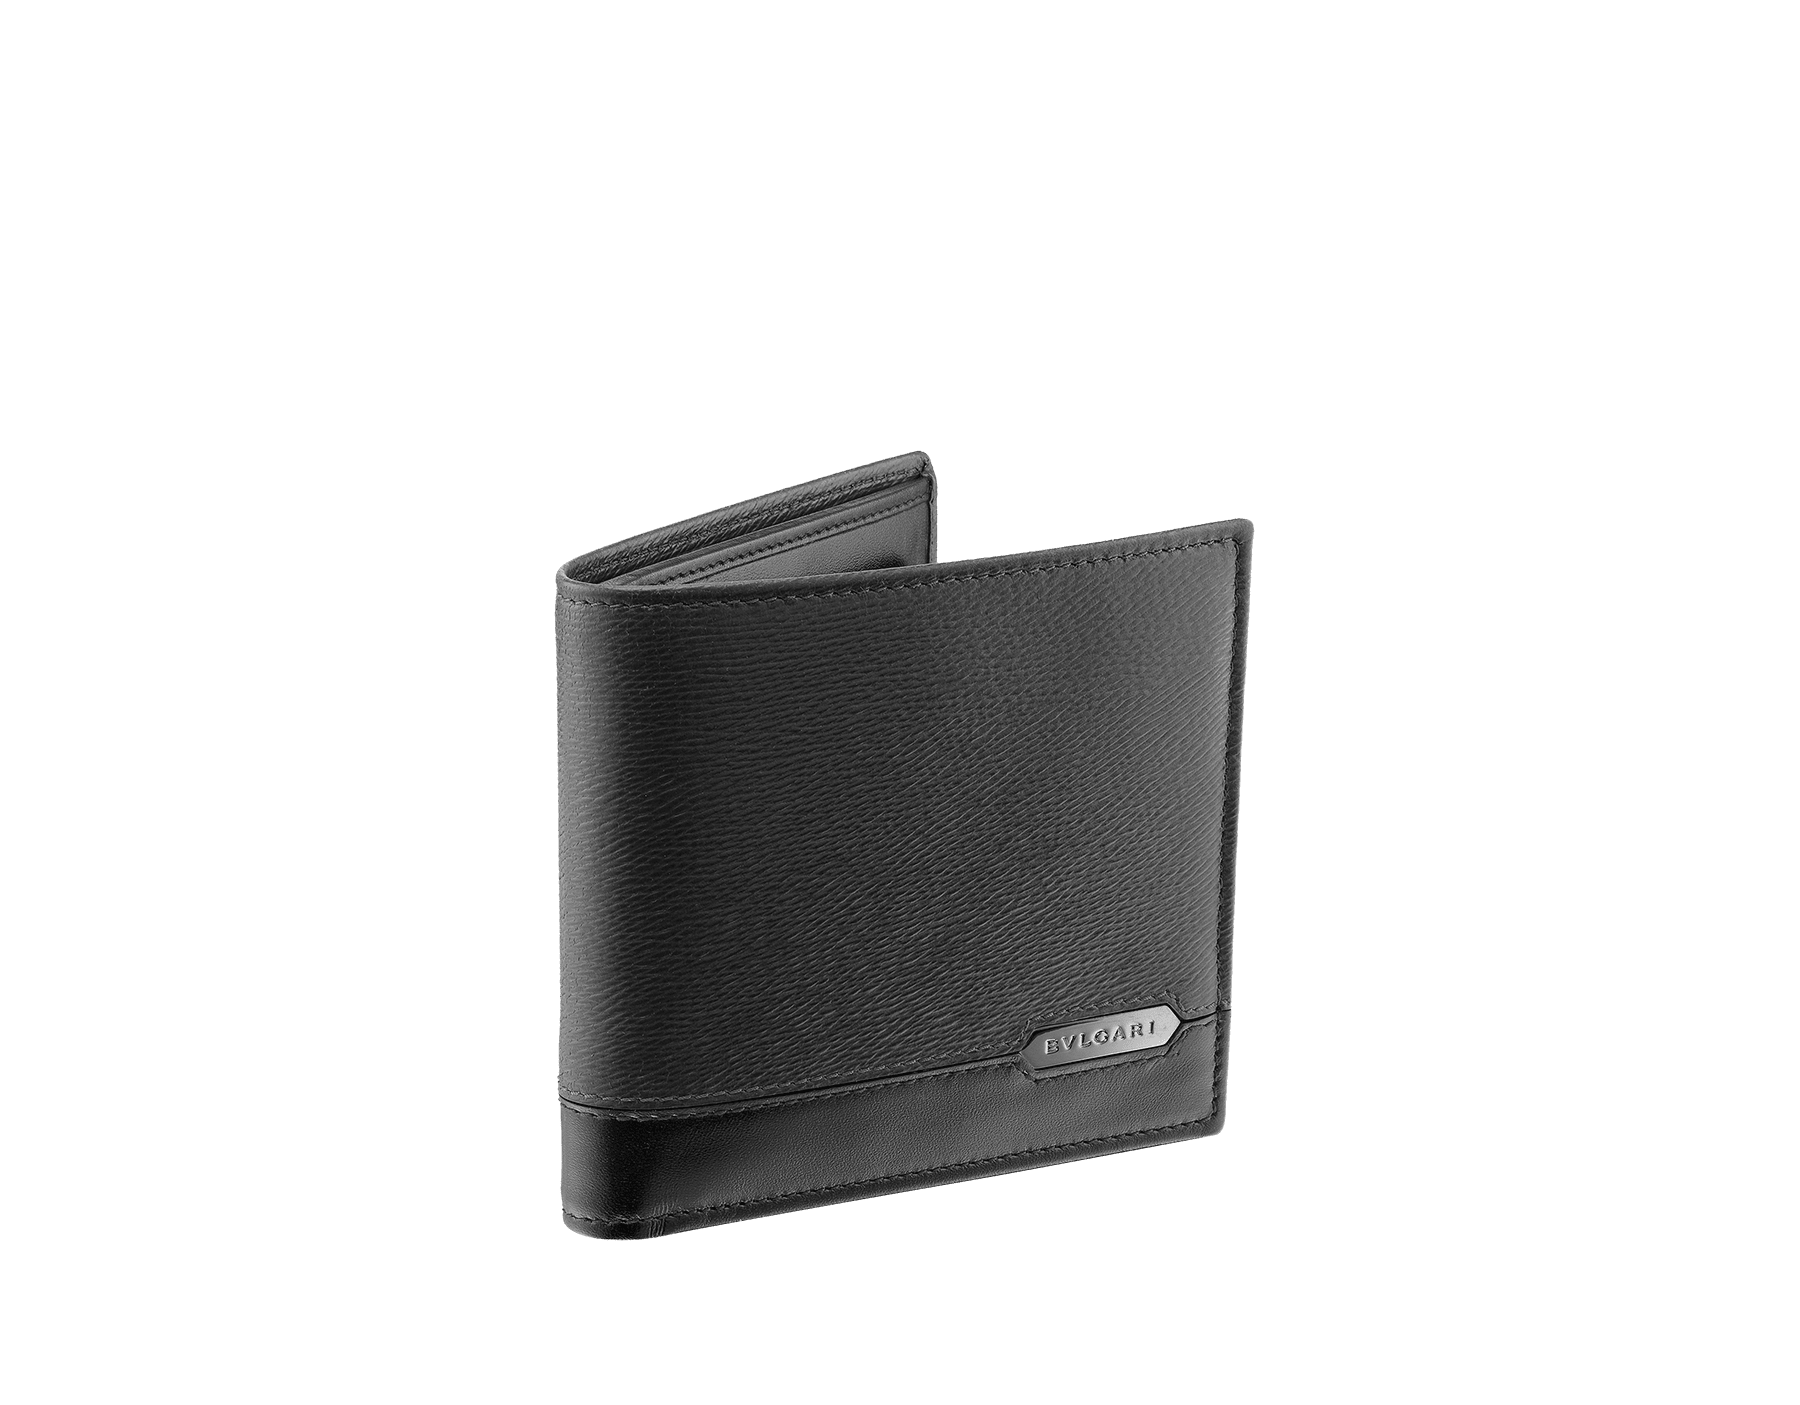 Serpenti Scaglie men's compact wallet in mimetic jade grazed calf leather and black calf leather. Bvlgari logo engraved on the hexagonal scaglie metal plate finished in dark ruthenium. 581-WLT-ITAL image 1